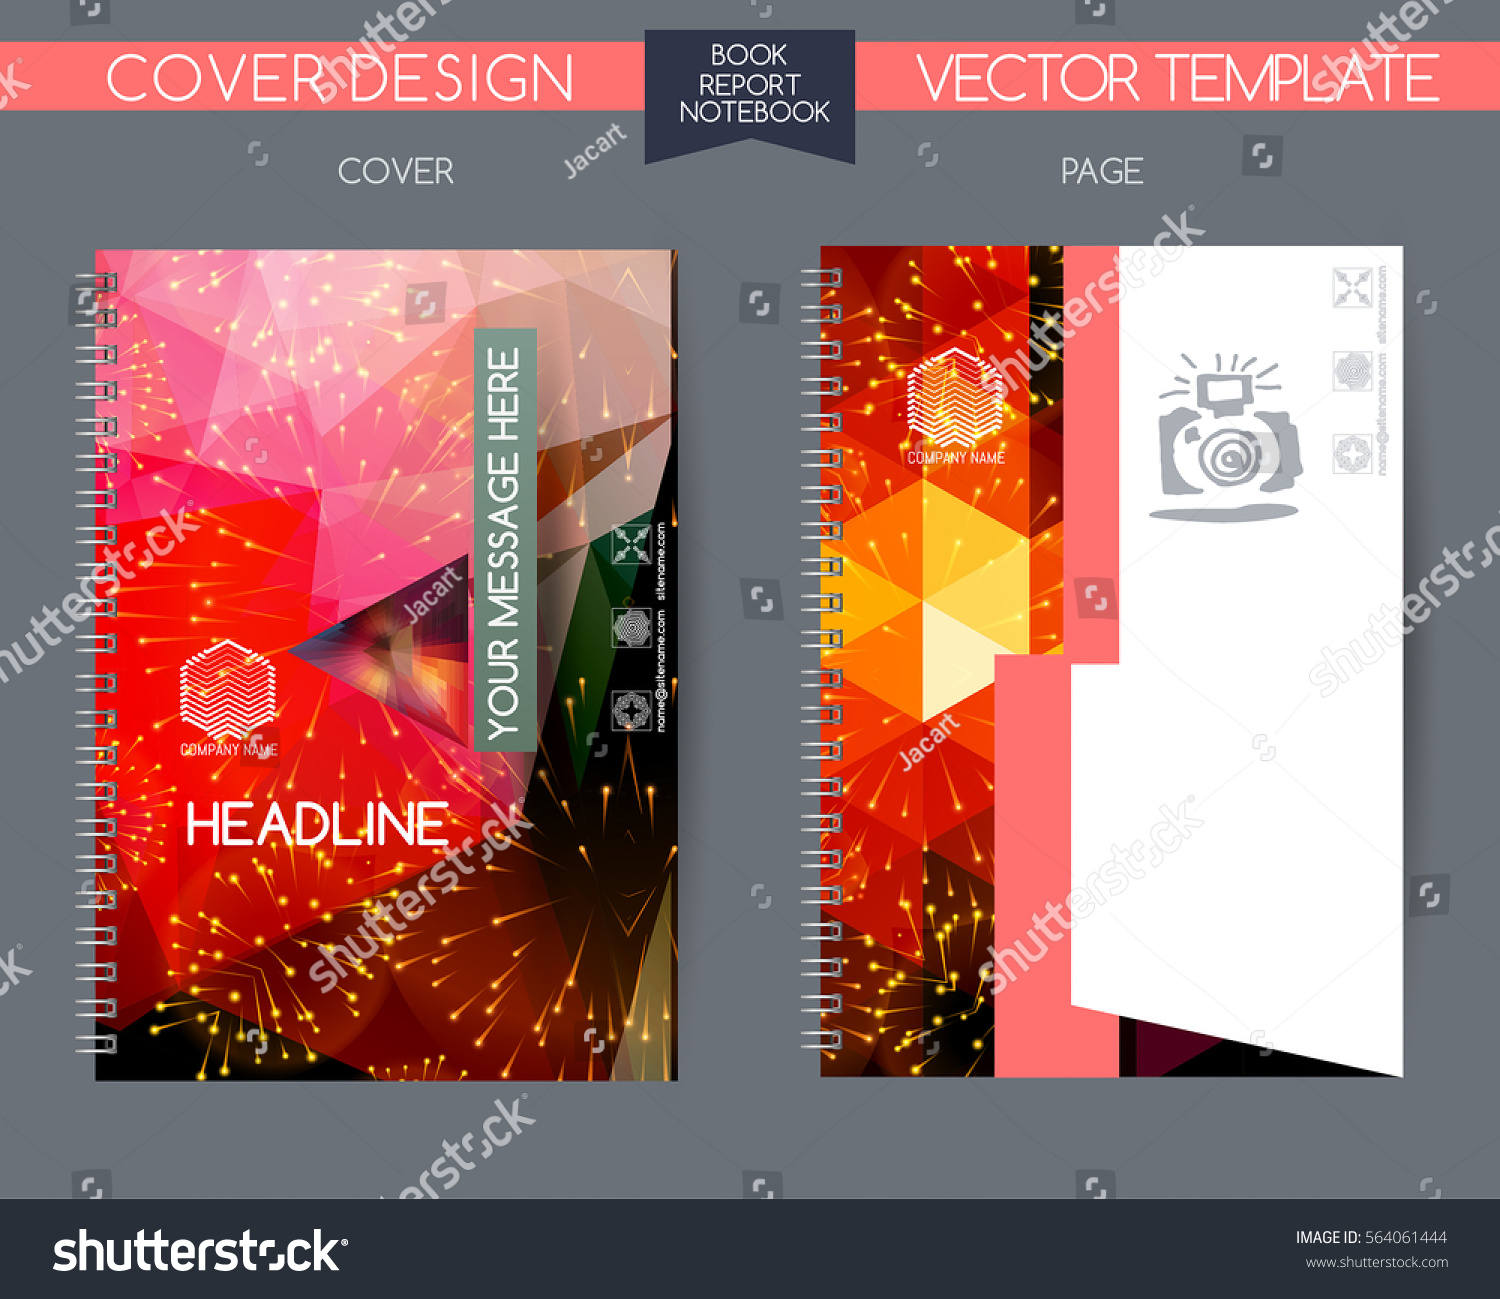 Book Cover Design Isolated Over Colorful Background : Cover page annual report vector design stock